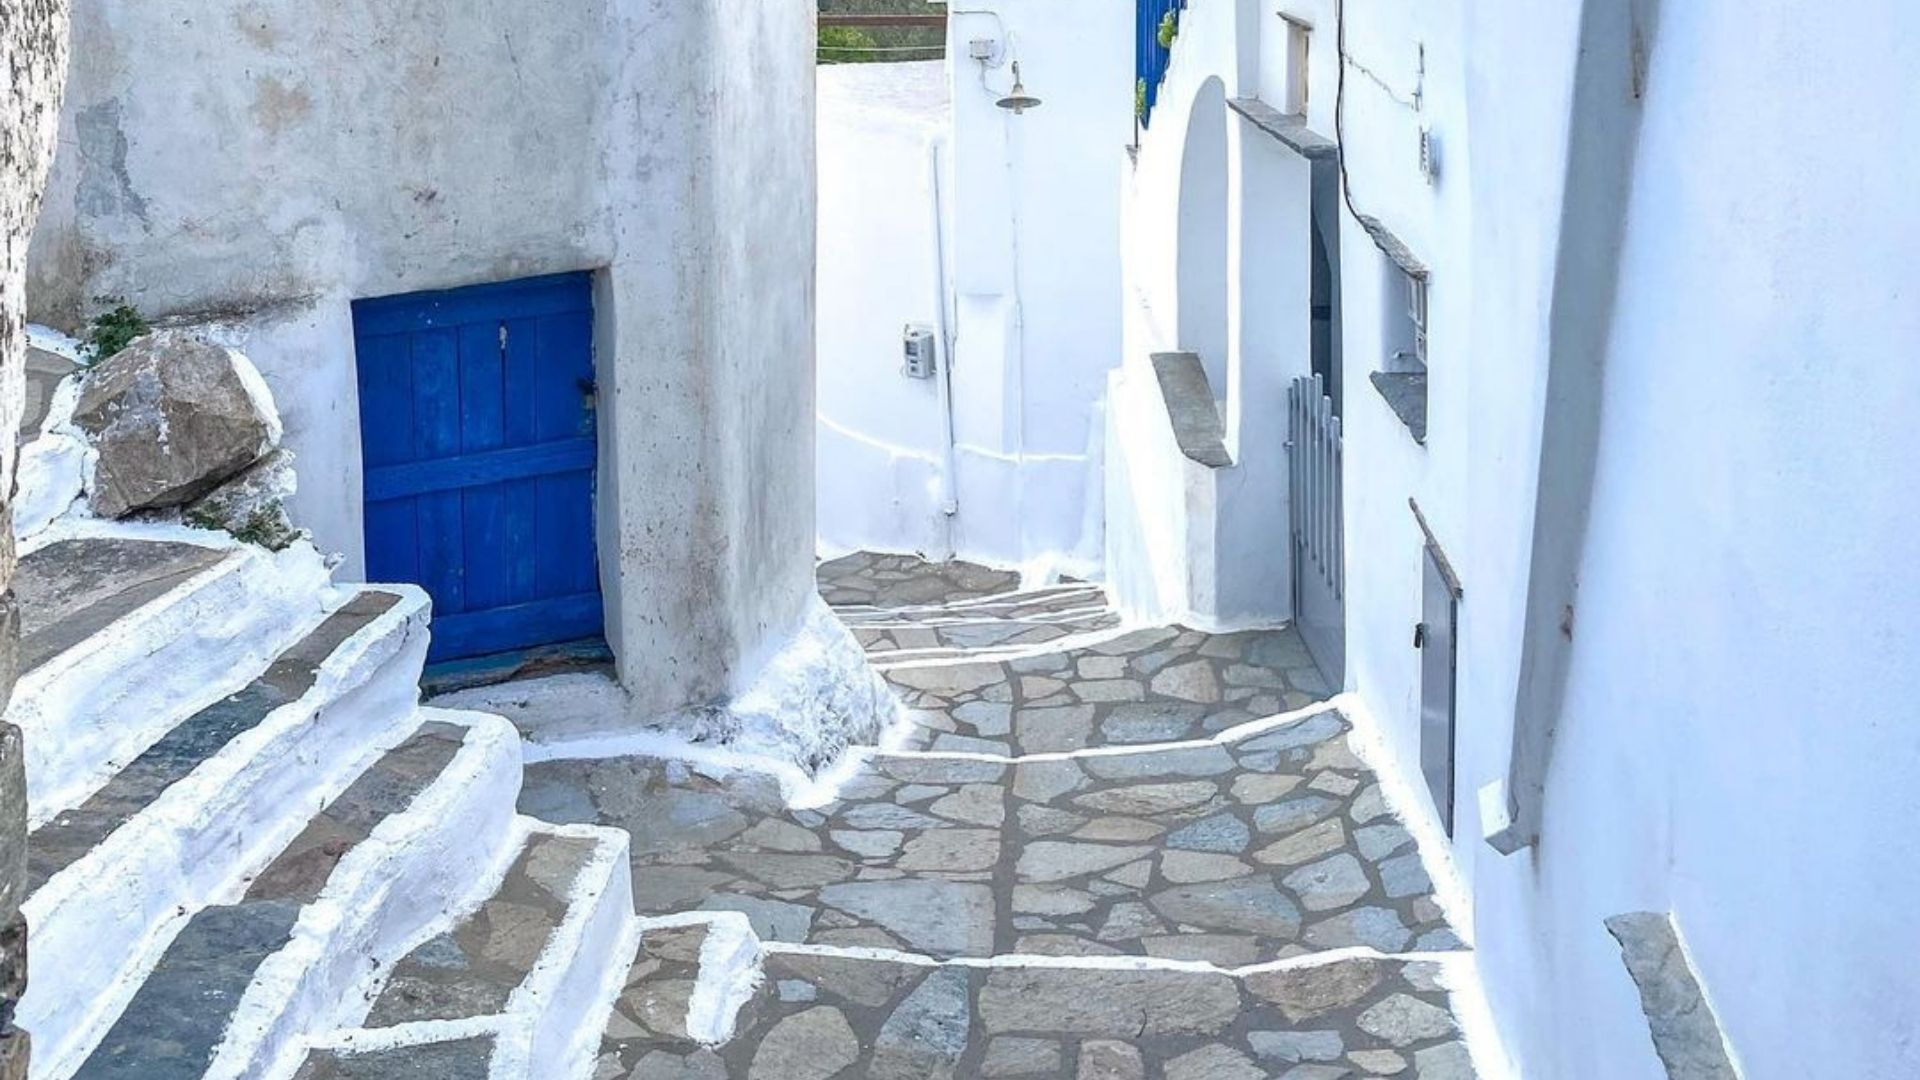 The cobblestone alleys of Tinos